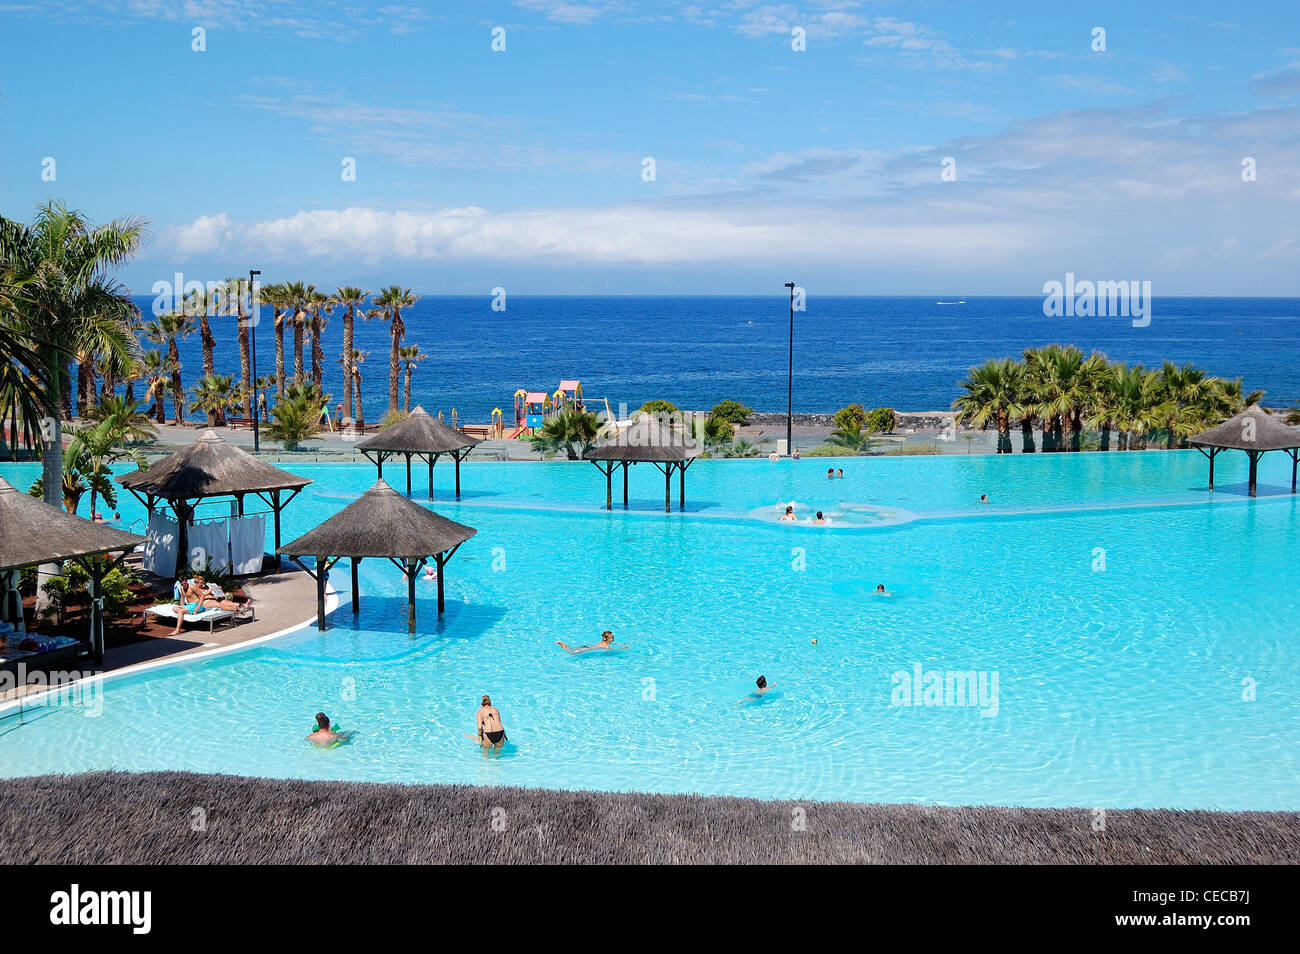 Swimming Pool With Jacuzzi And Beach Of Luxury Hotel Tenerife Stock